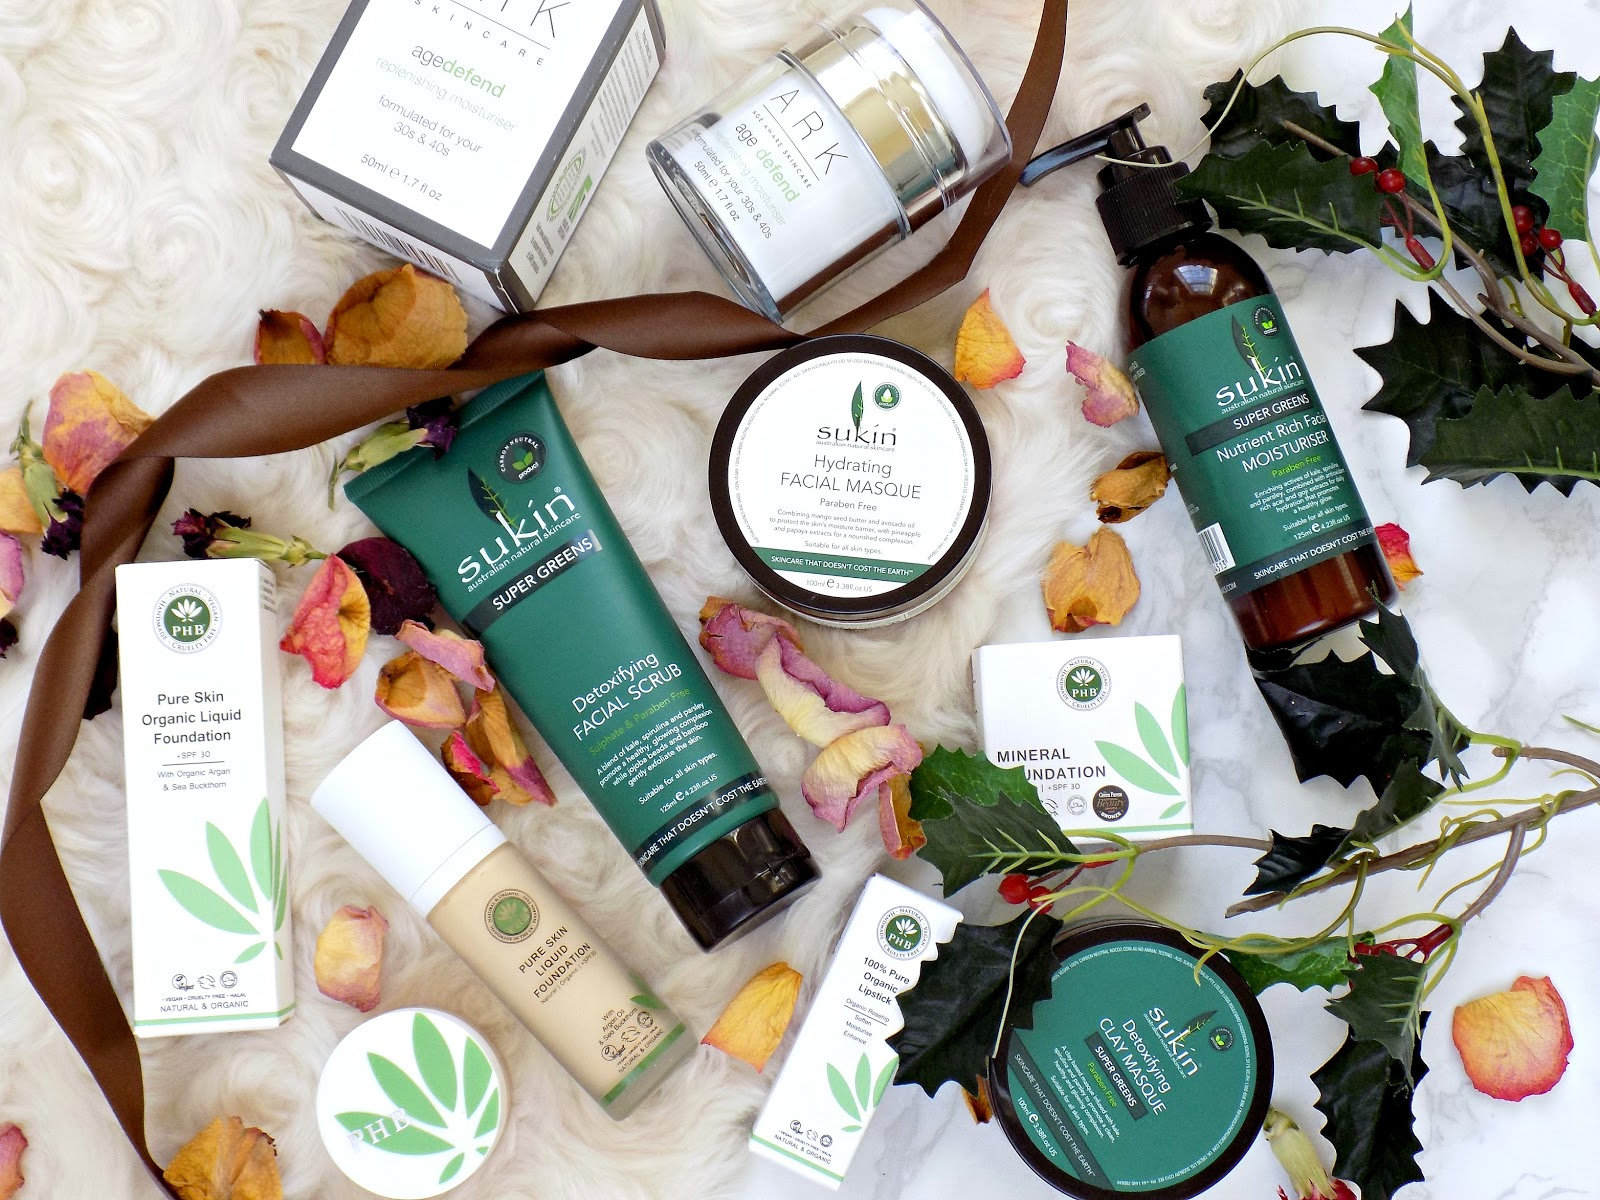 Vegan friendly beauty brands: Sukin, Ark, PHB Ethical Beauty